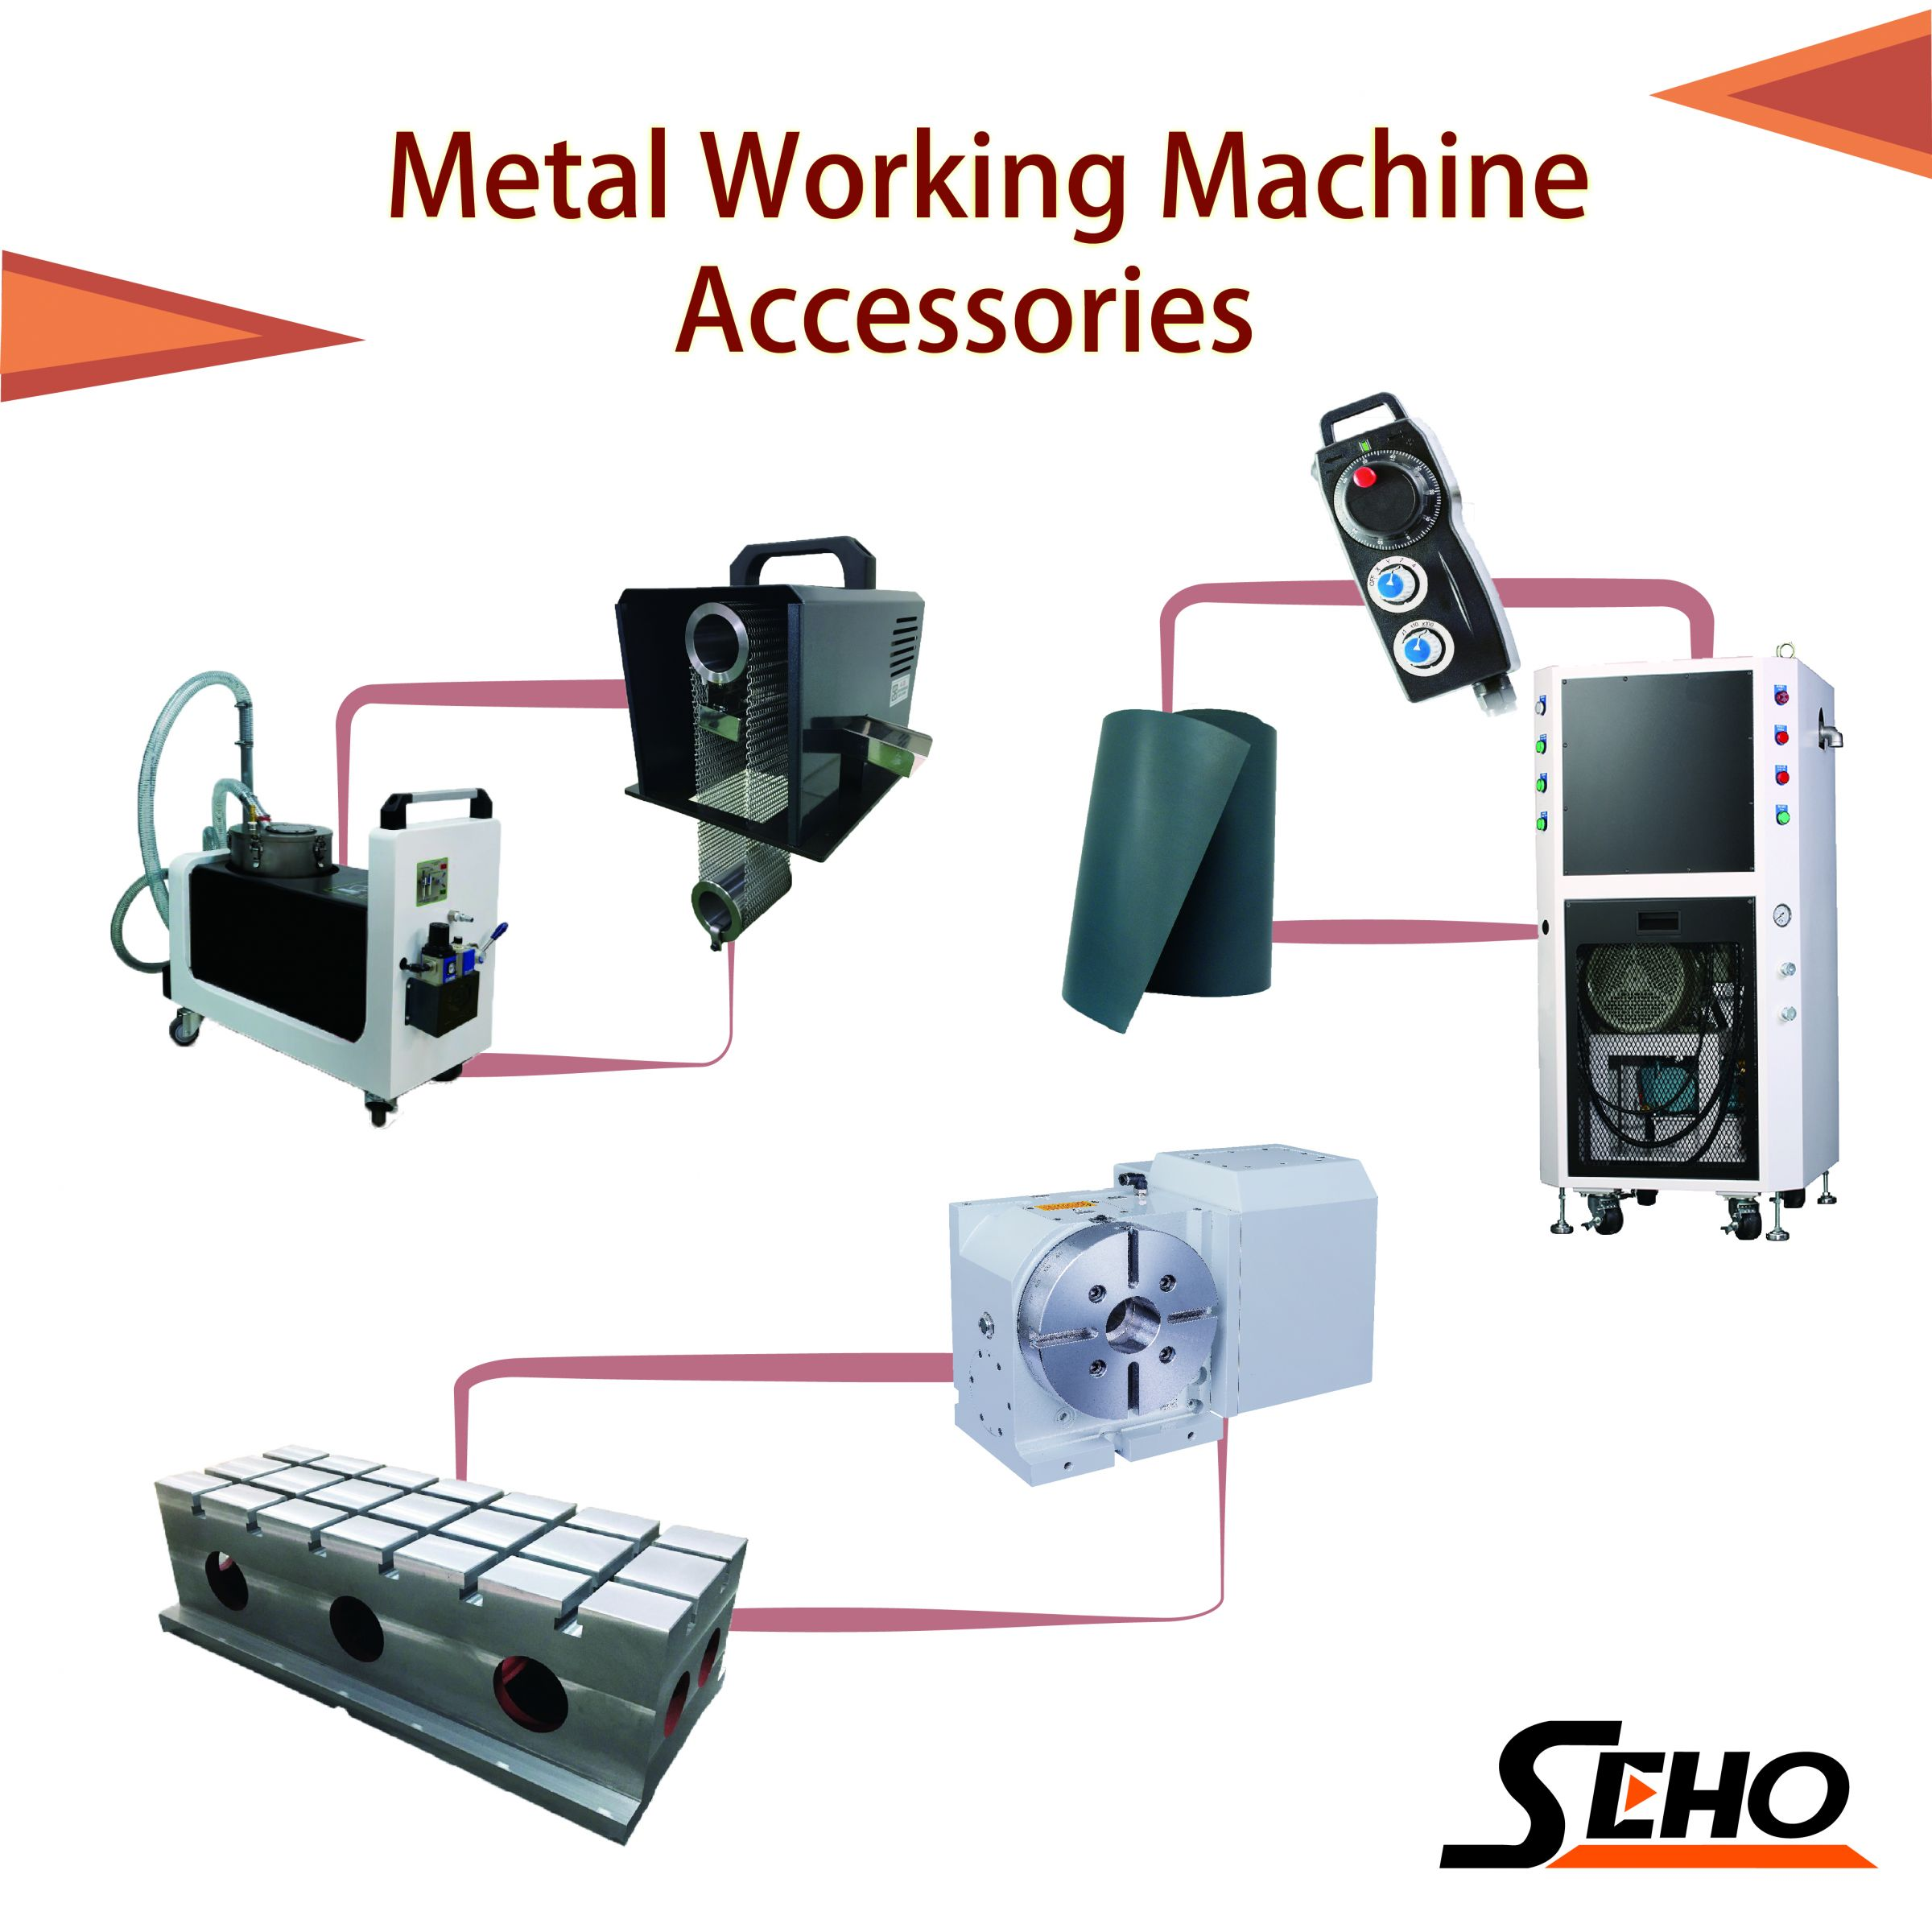 Machine Accessories, Machine Tool Accessories